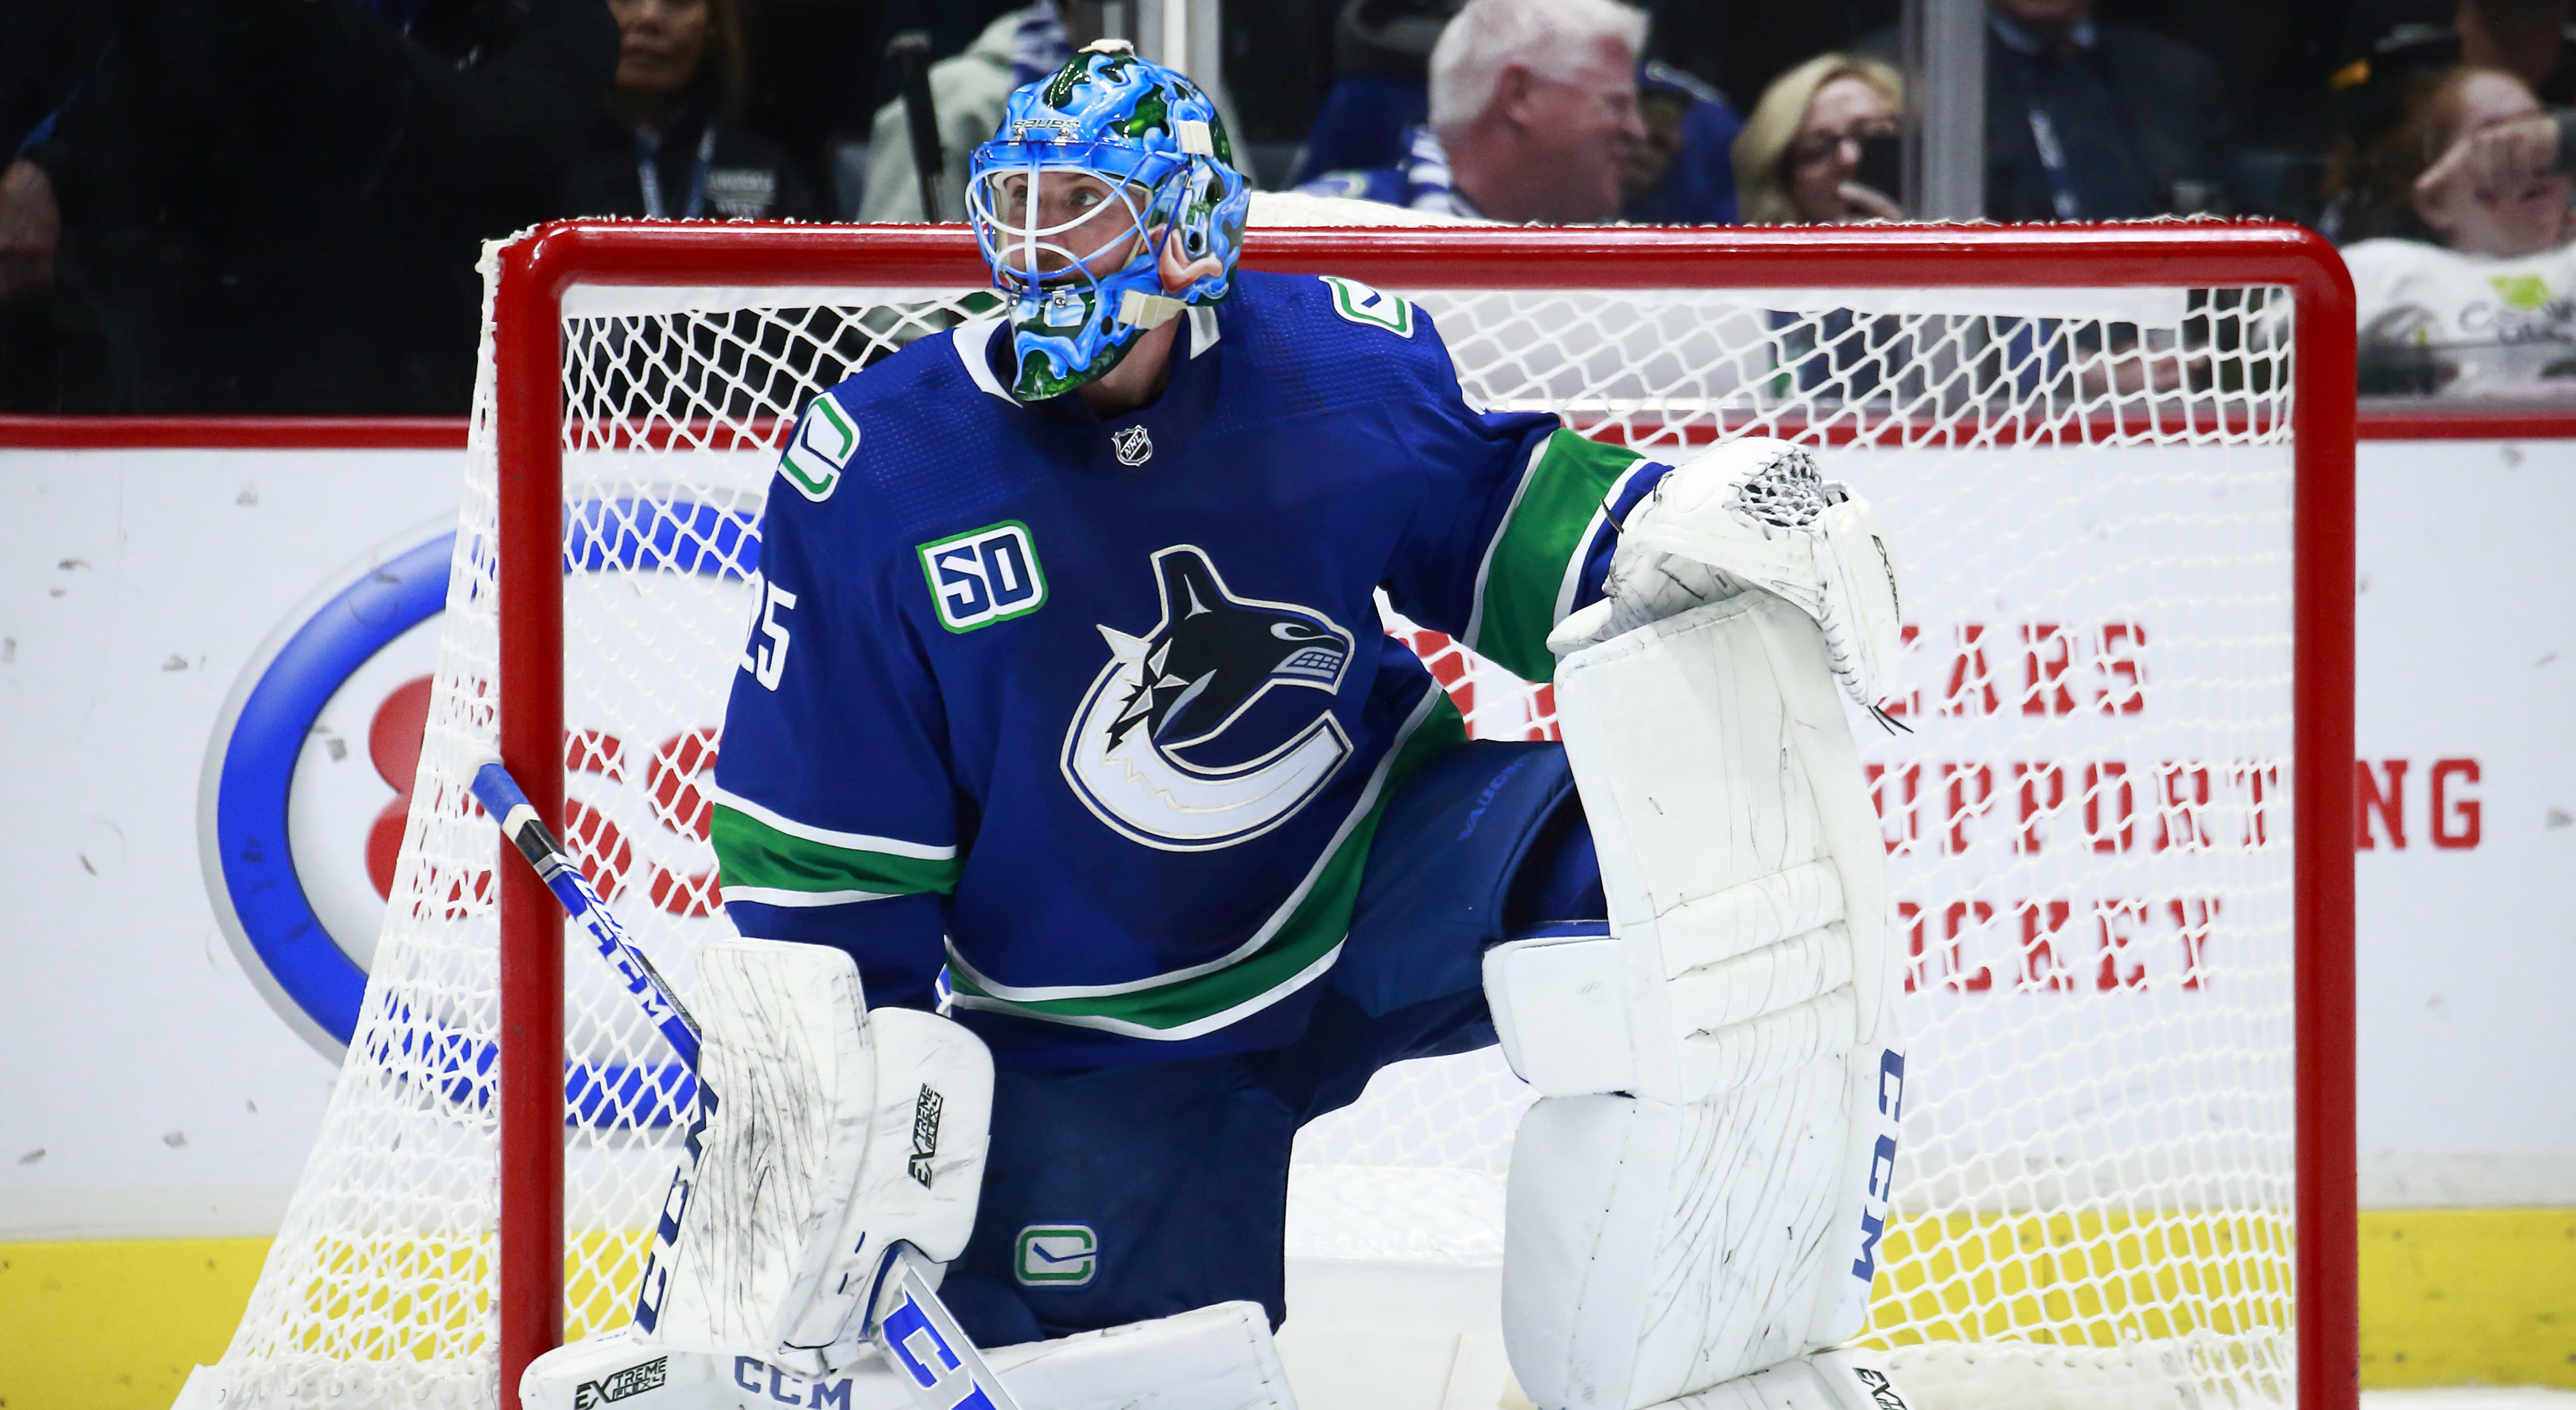 Canucks Jacob Markstrom Granted Leave Of Absence